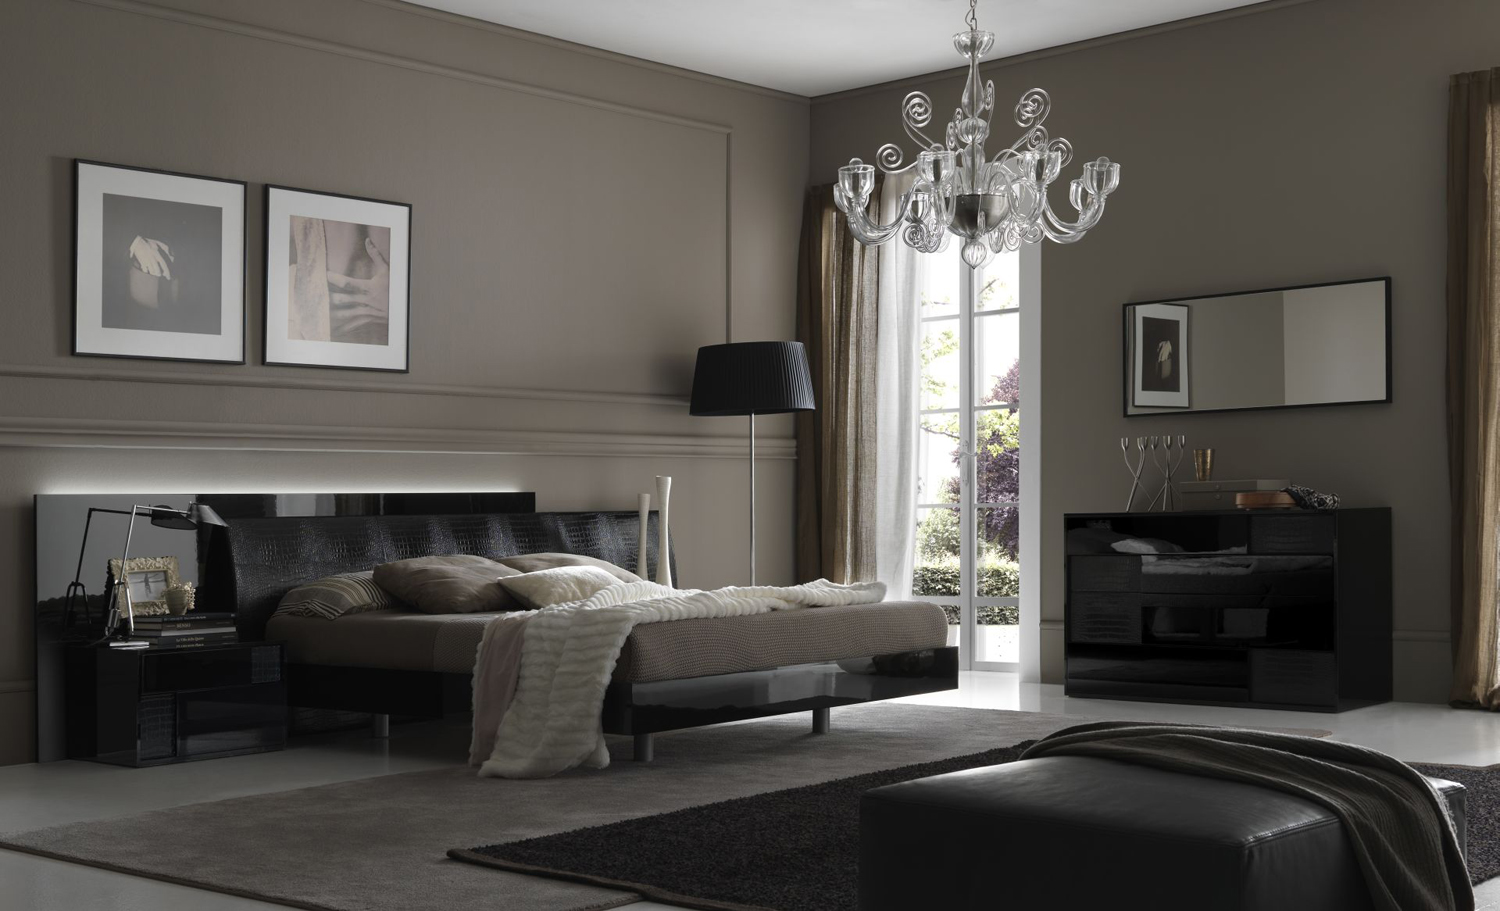 Stunning Grey Walls Bedroom Decorating Ideas 1500 x 911 · 537 kB · jpeg